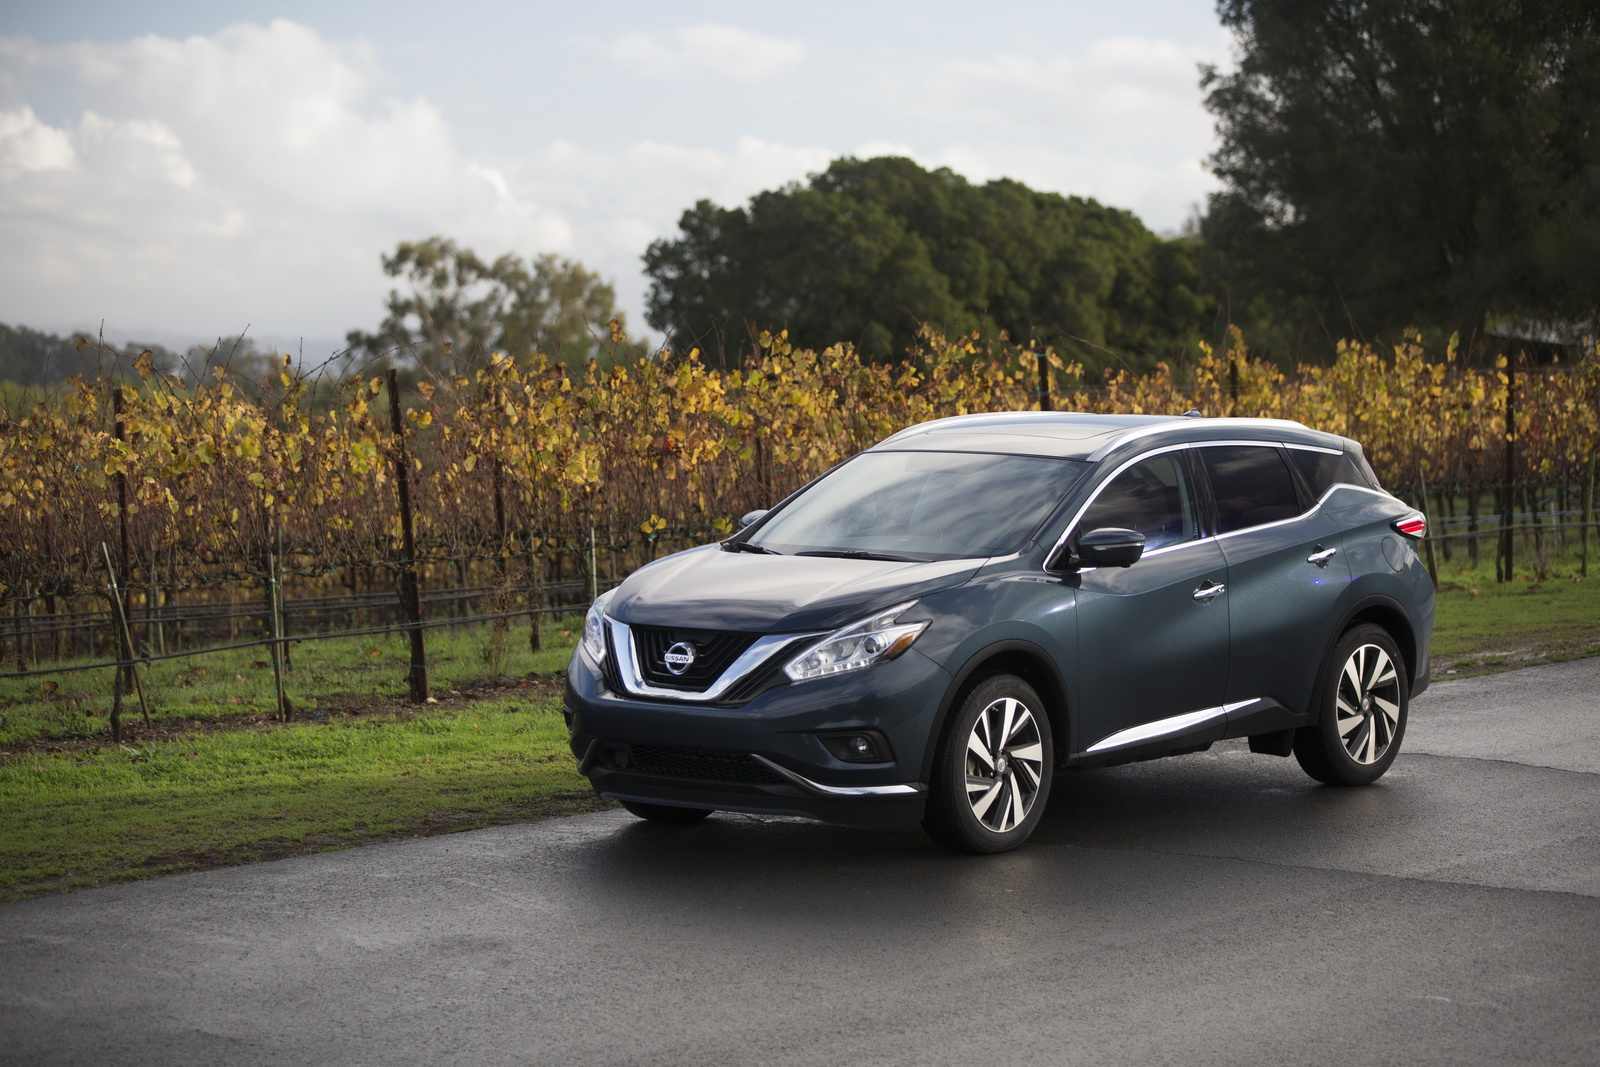 nissan murano soldiers on for 2017 with apple carplay starts at 30 640. Black Bedroom Furniture Sets. Home Design Ideas